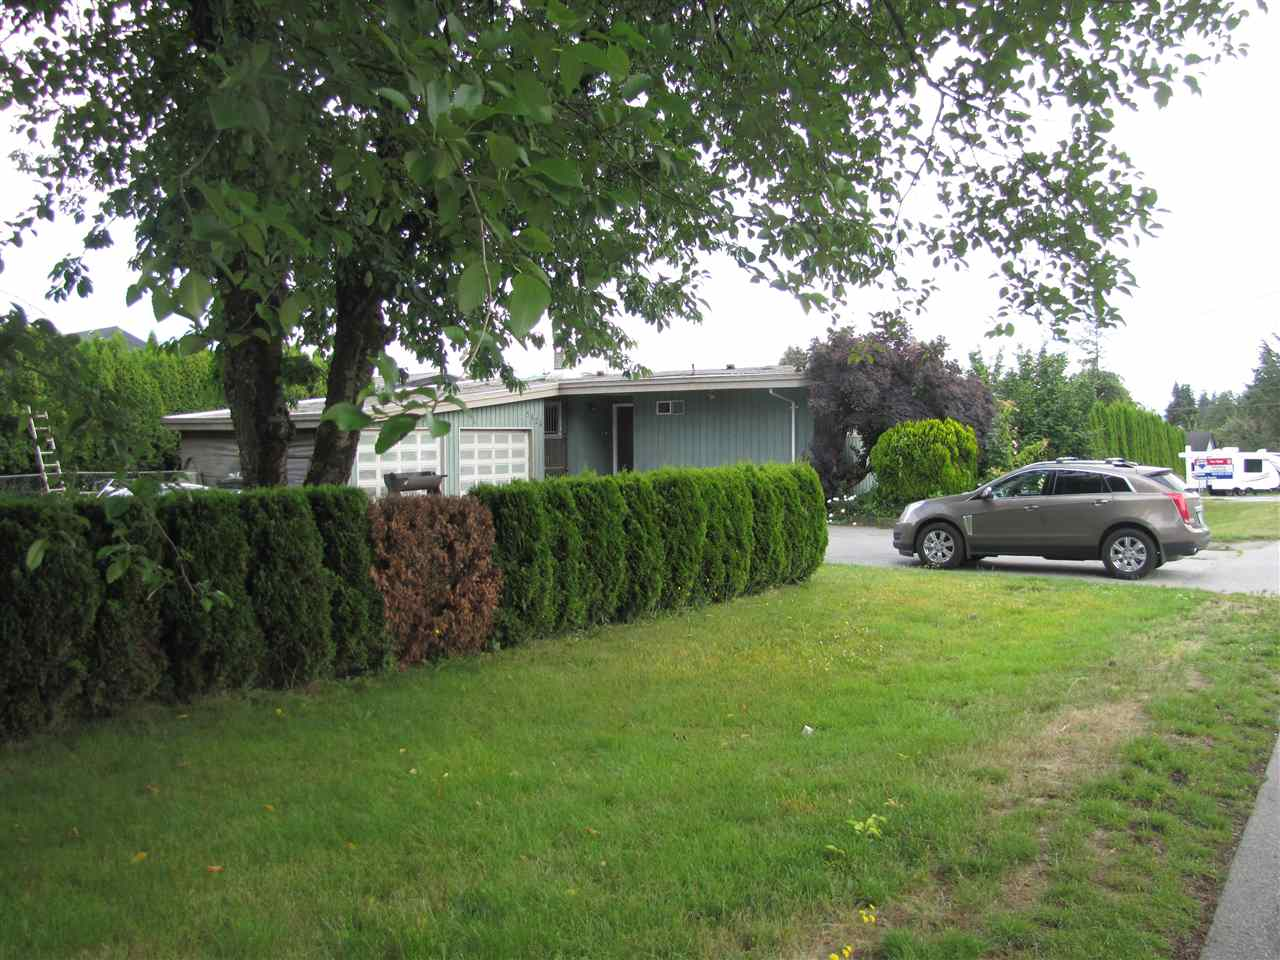 Main Photo: 5824 172 Street in Surrey: Cloverdale BC House for sale (Cloverdale)  : MLS® # R2088081